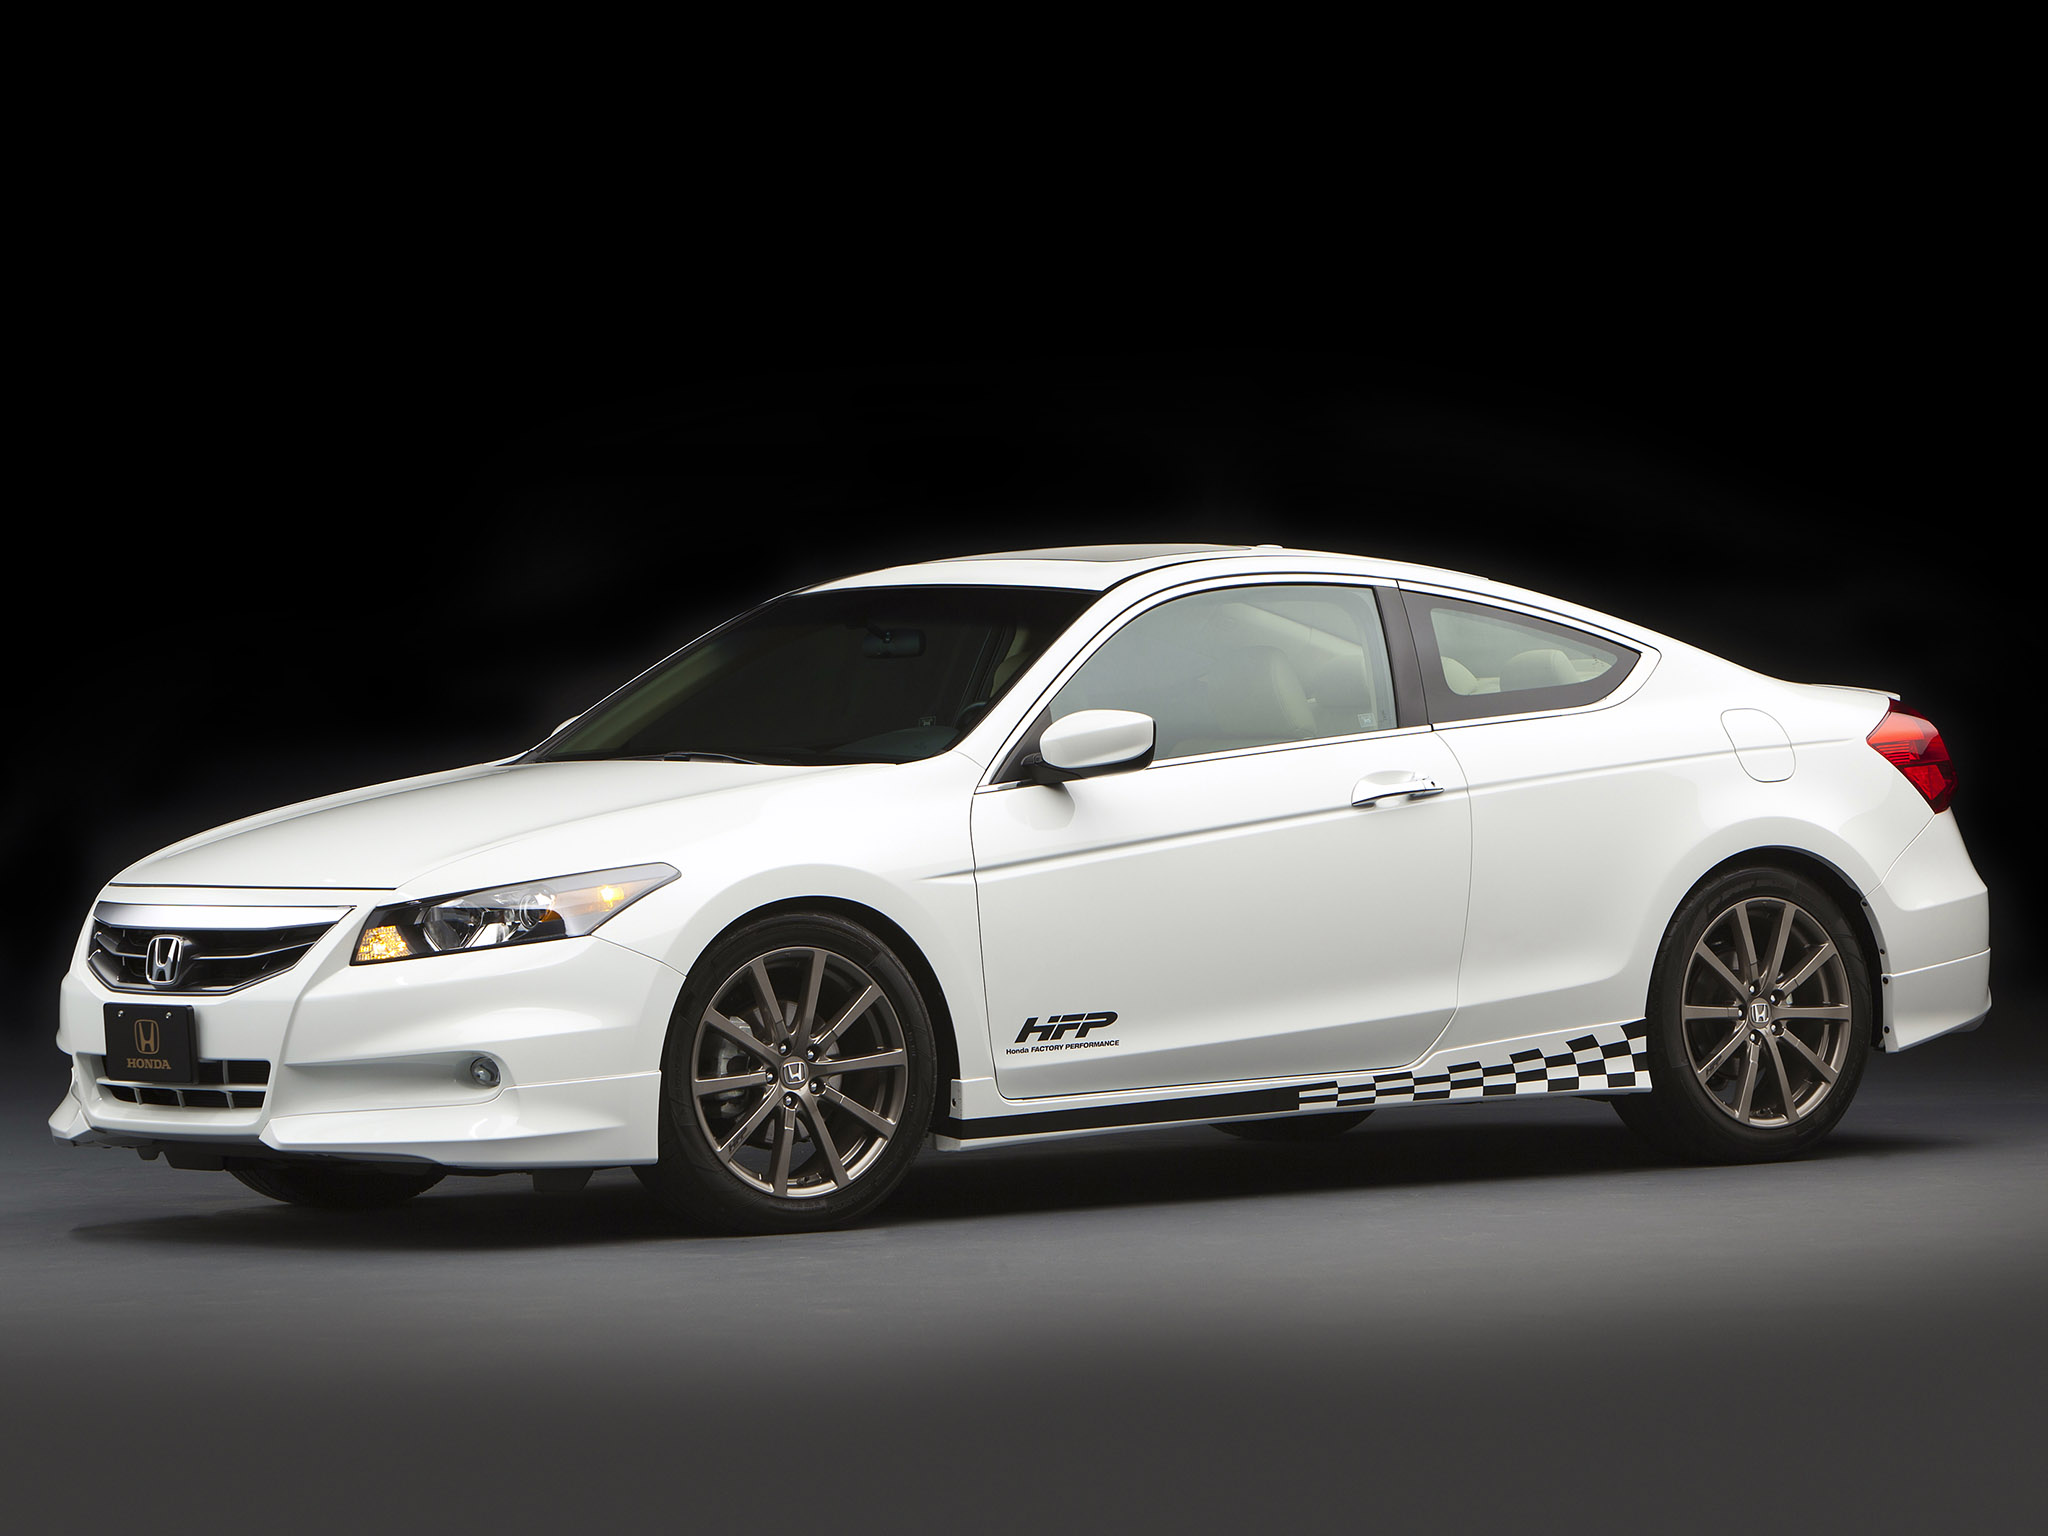 Honda Accord Coupe V6 Concept 2011 Honda Accord Coupe V6